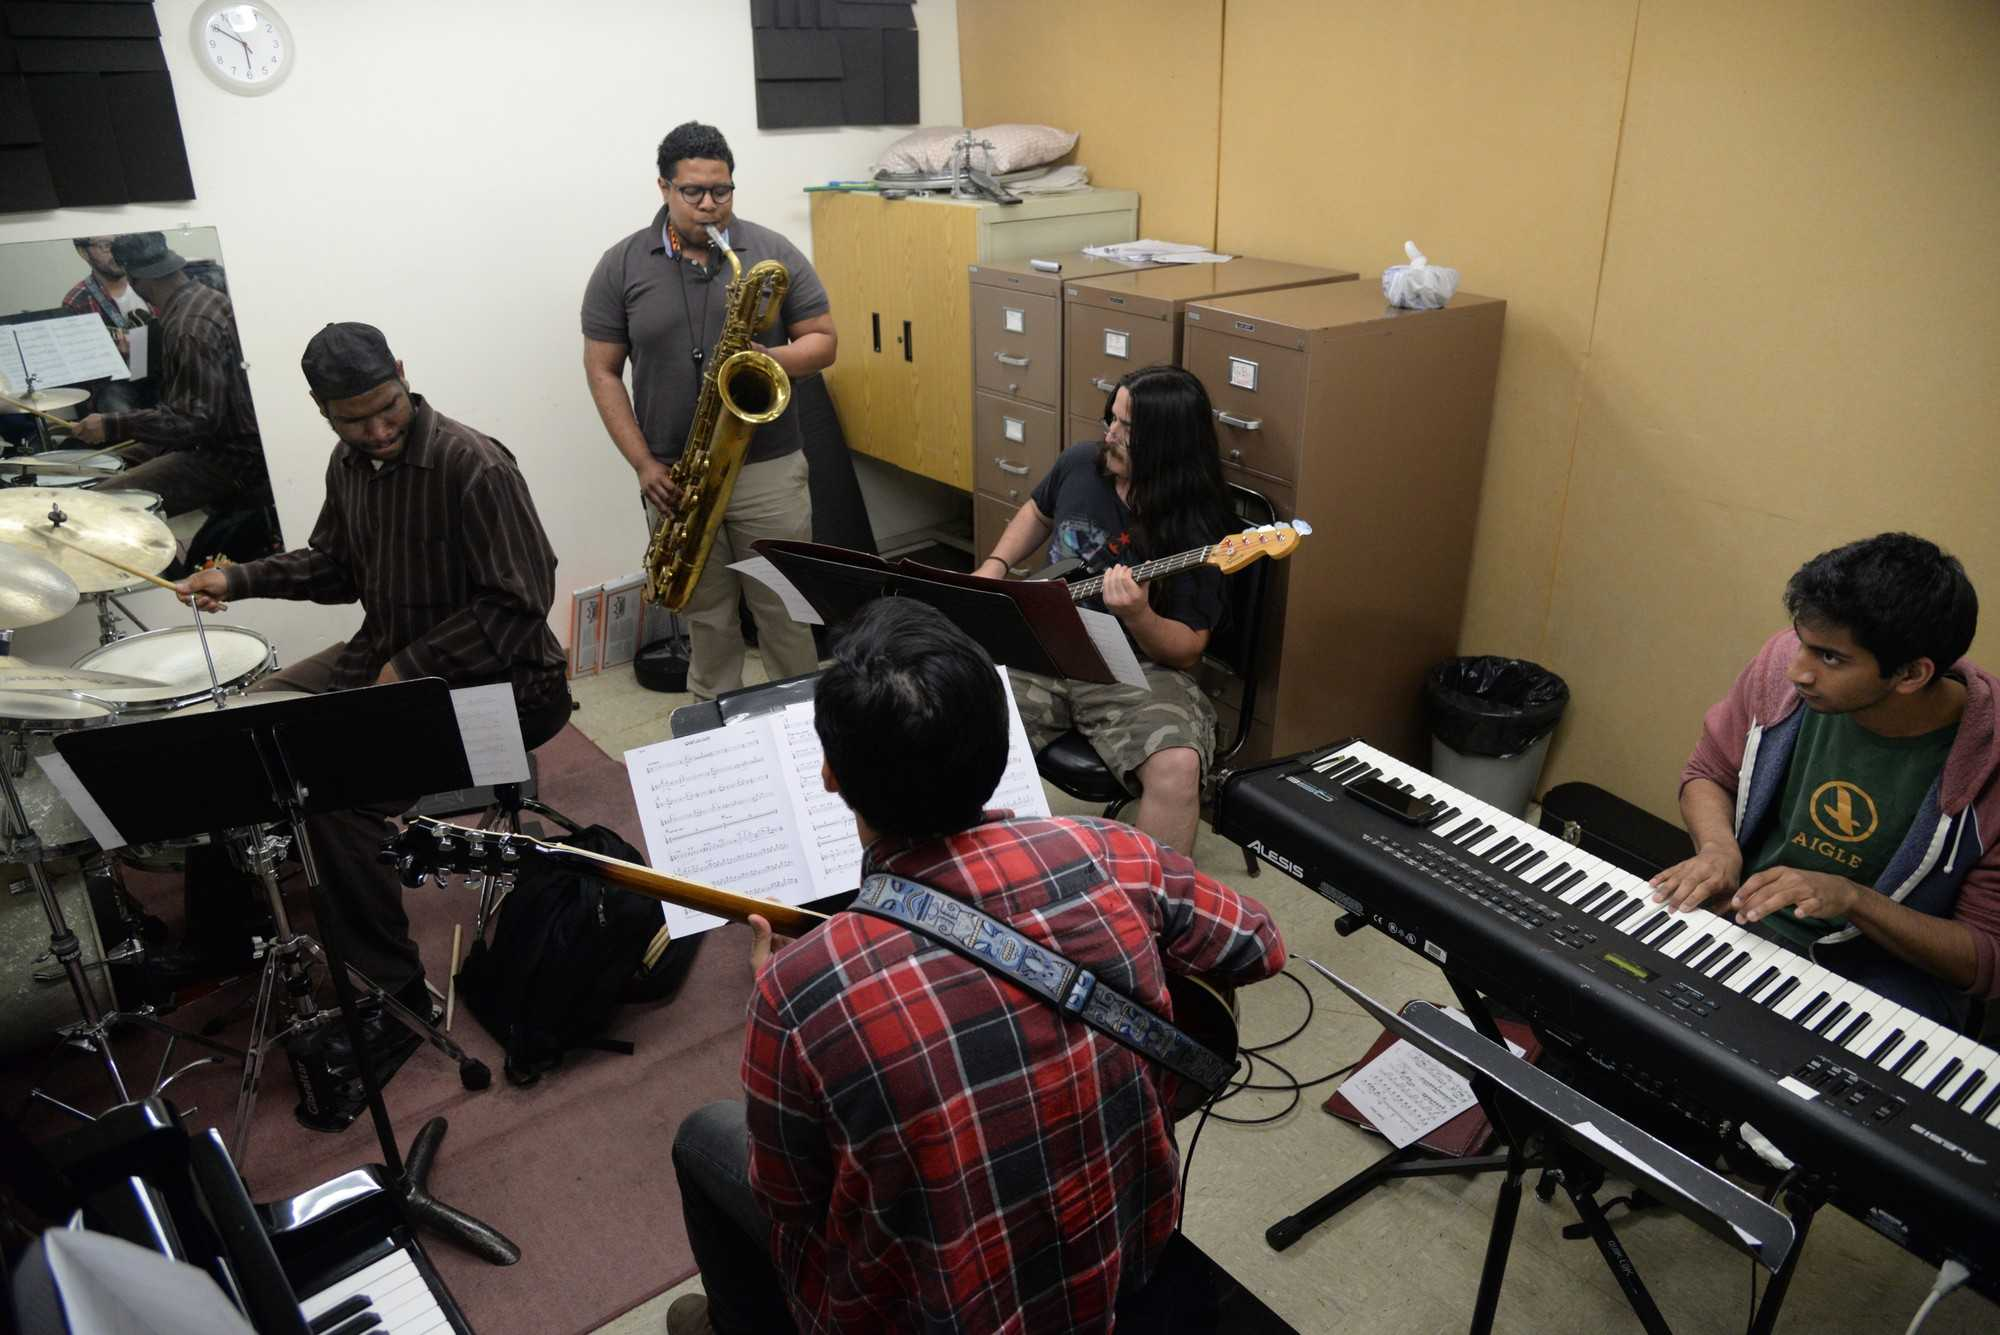 Walter Jones, 26, plays the drums, Tyler Johnson, 22, plays the saxophone, Gavin Vellems, 22, plays the bass, Srimal Del Mel, 19, plays the piano and John Aparicio, 24, plays the guitar. The band met here through the music program which they consider,